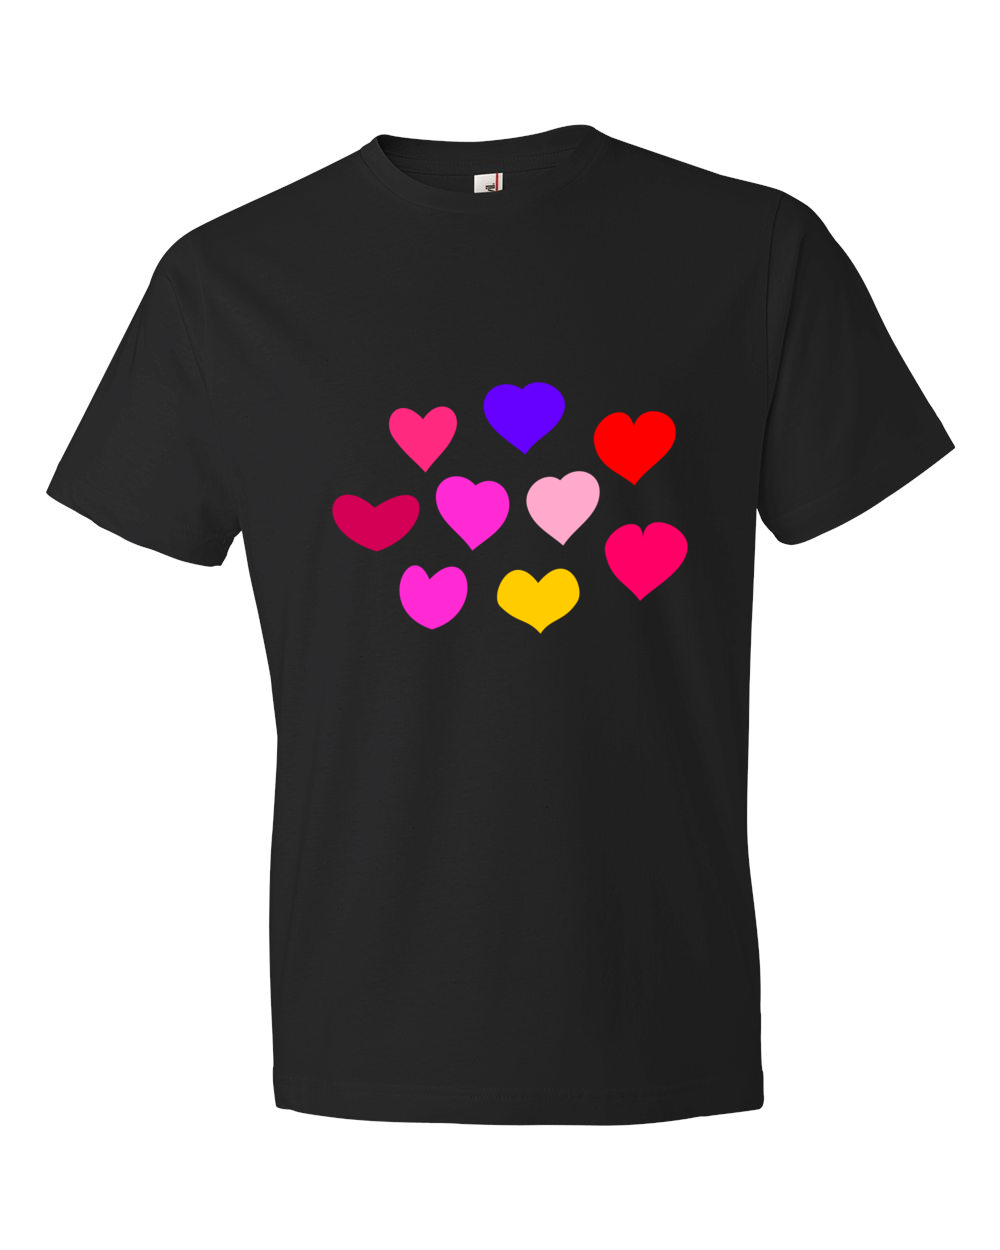 Hearts-Lightweight-Fashion-Short-Sleeve-T-Shirt-by-iTEE.com